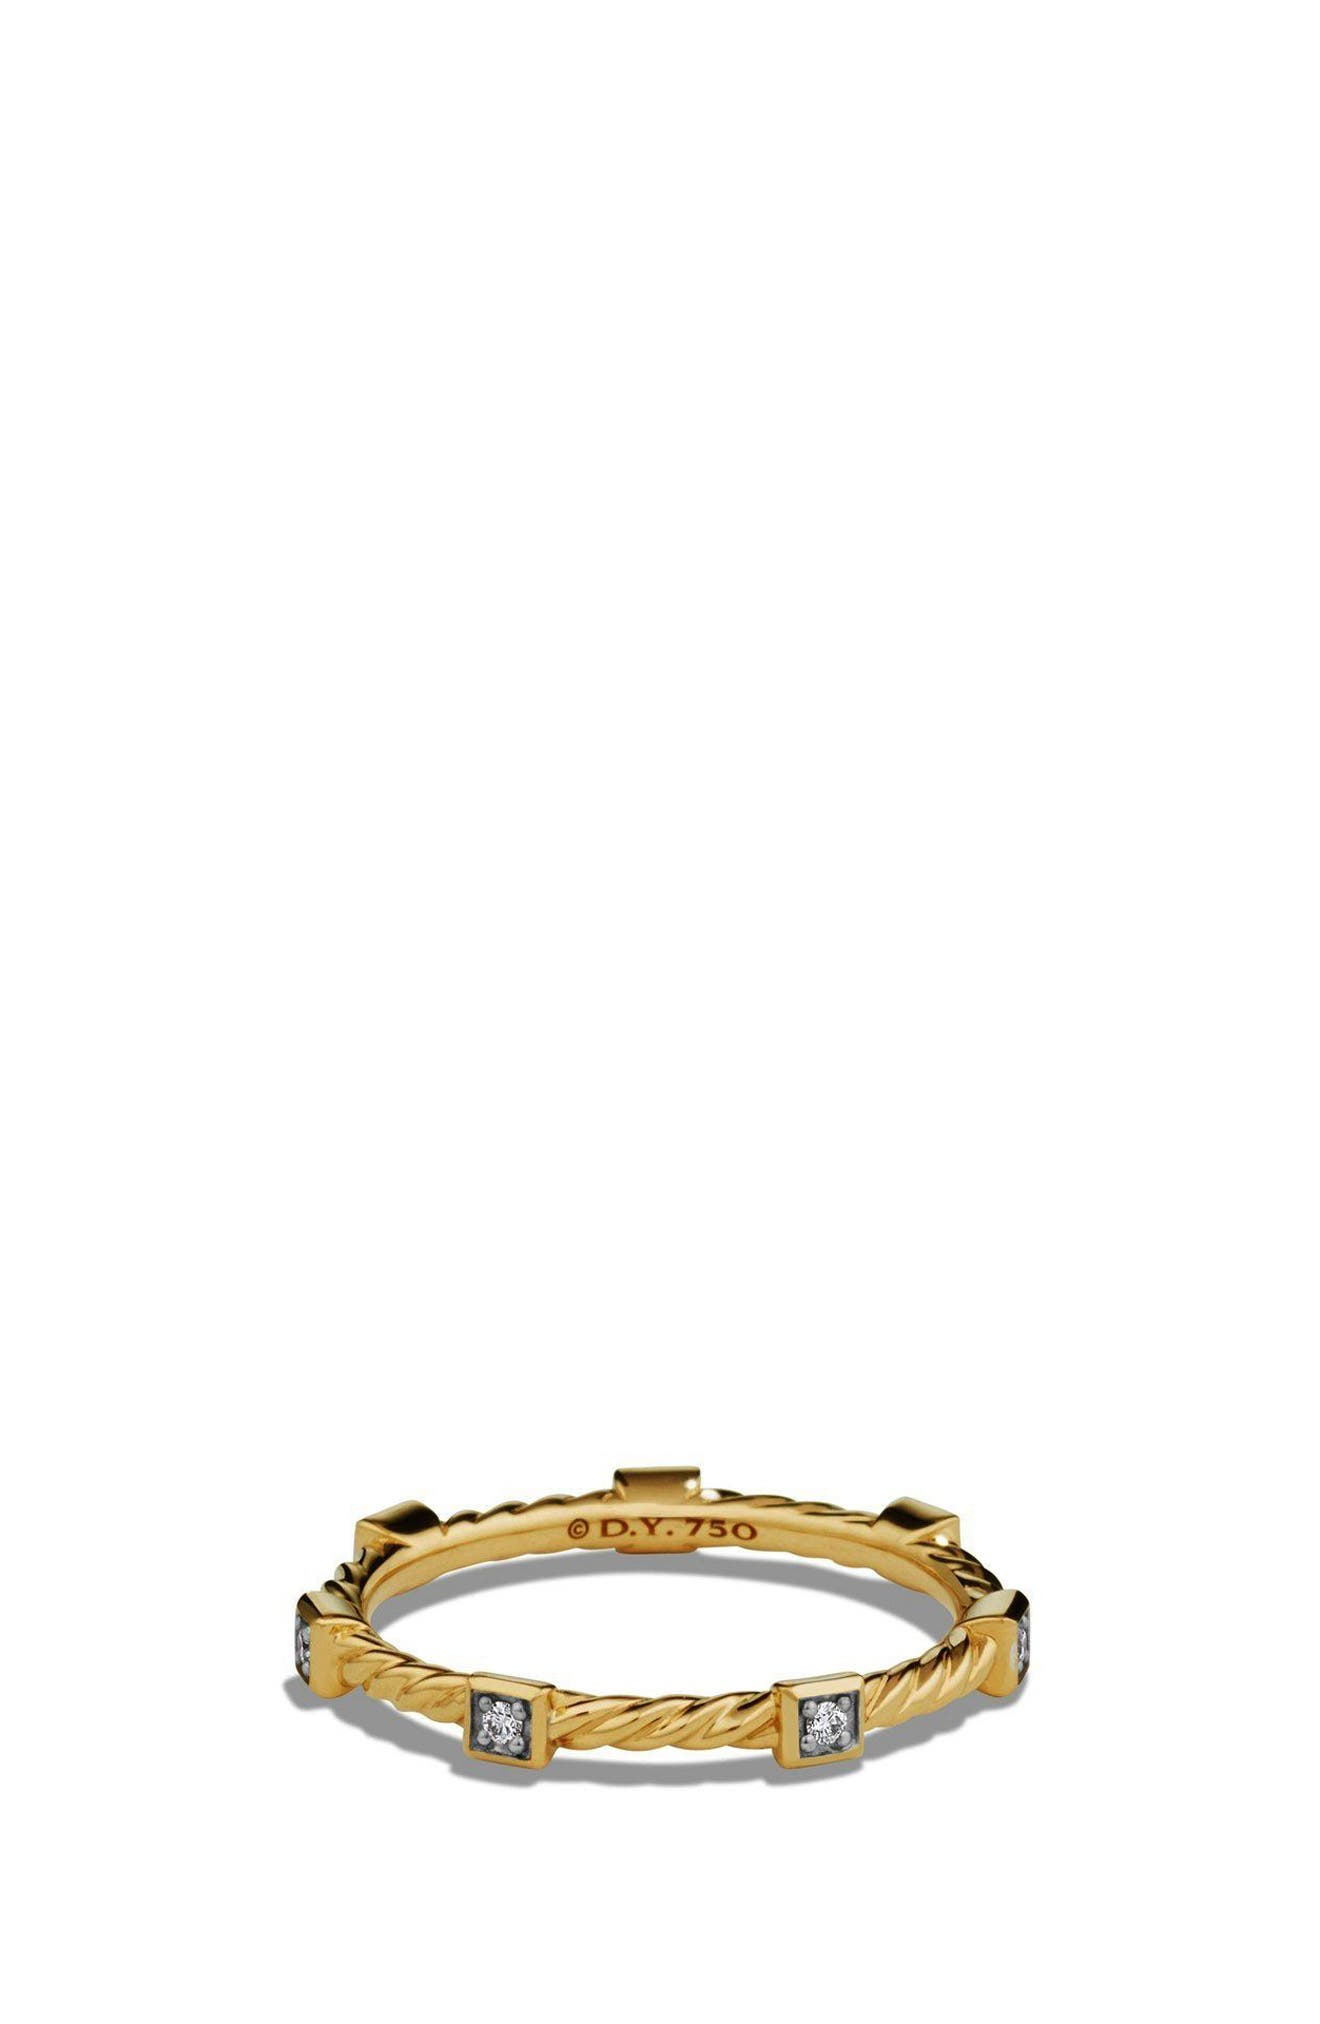 Paveflex Ring with Diamonds in 18K Gold, 2.7mm,                         Main,                         color, 18K YELLOW GOLD/ DIAMOND